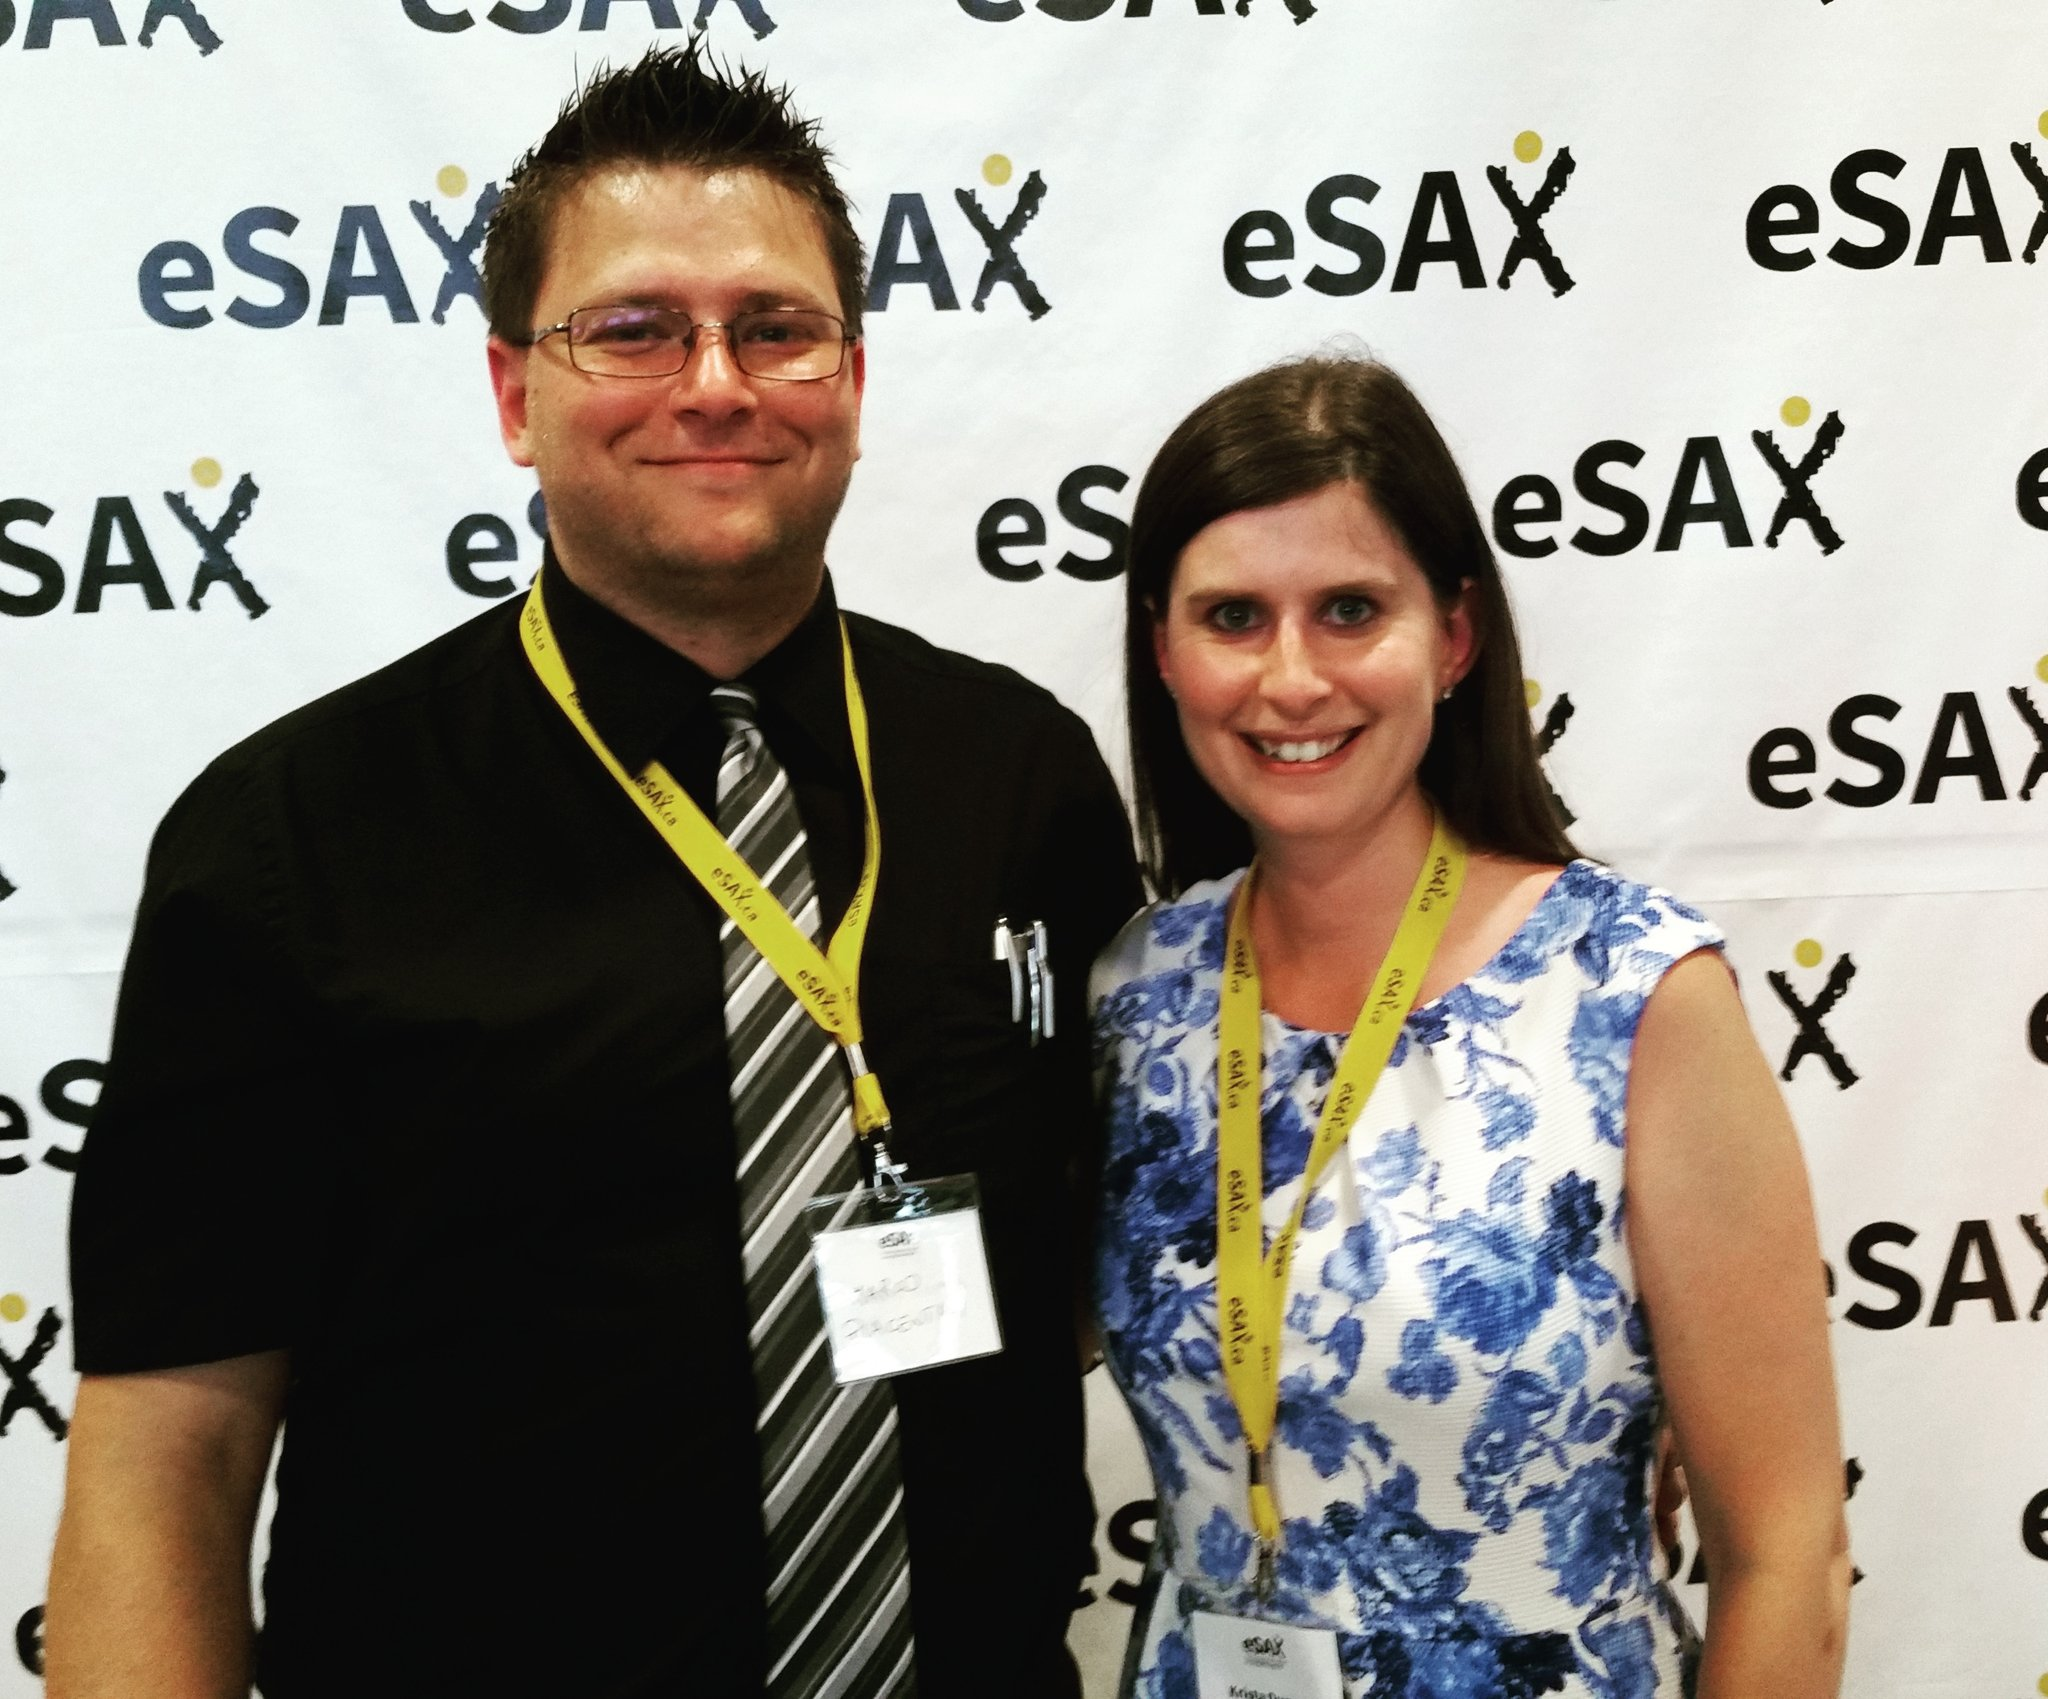 We love getting out and meeting members of the #ottcity #smallbiz community! #eSAX #supportlocal https://t.co/wGrjkyc9g5